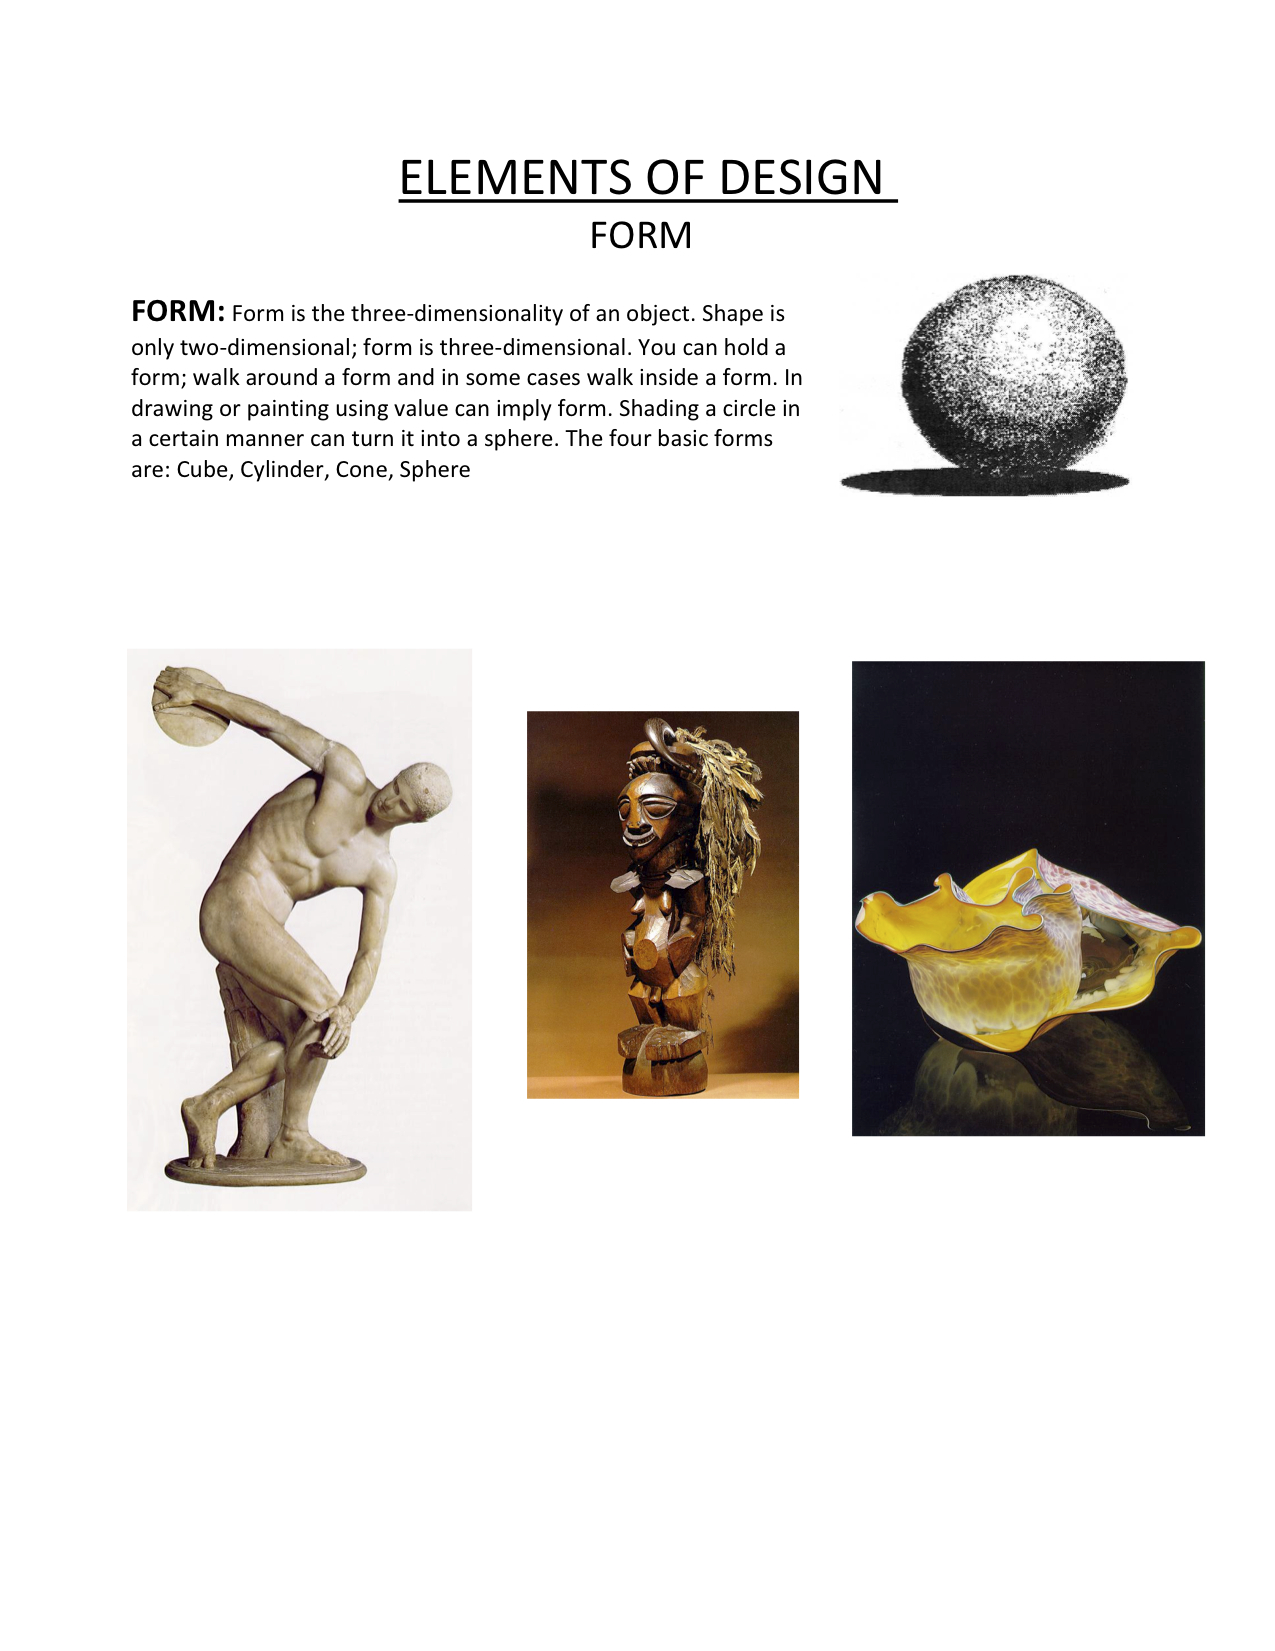 Elements of Design - Form